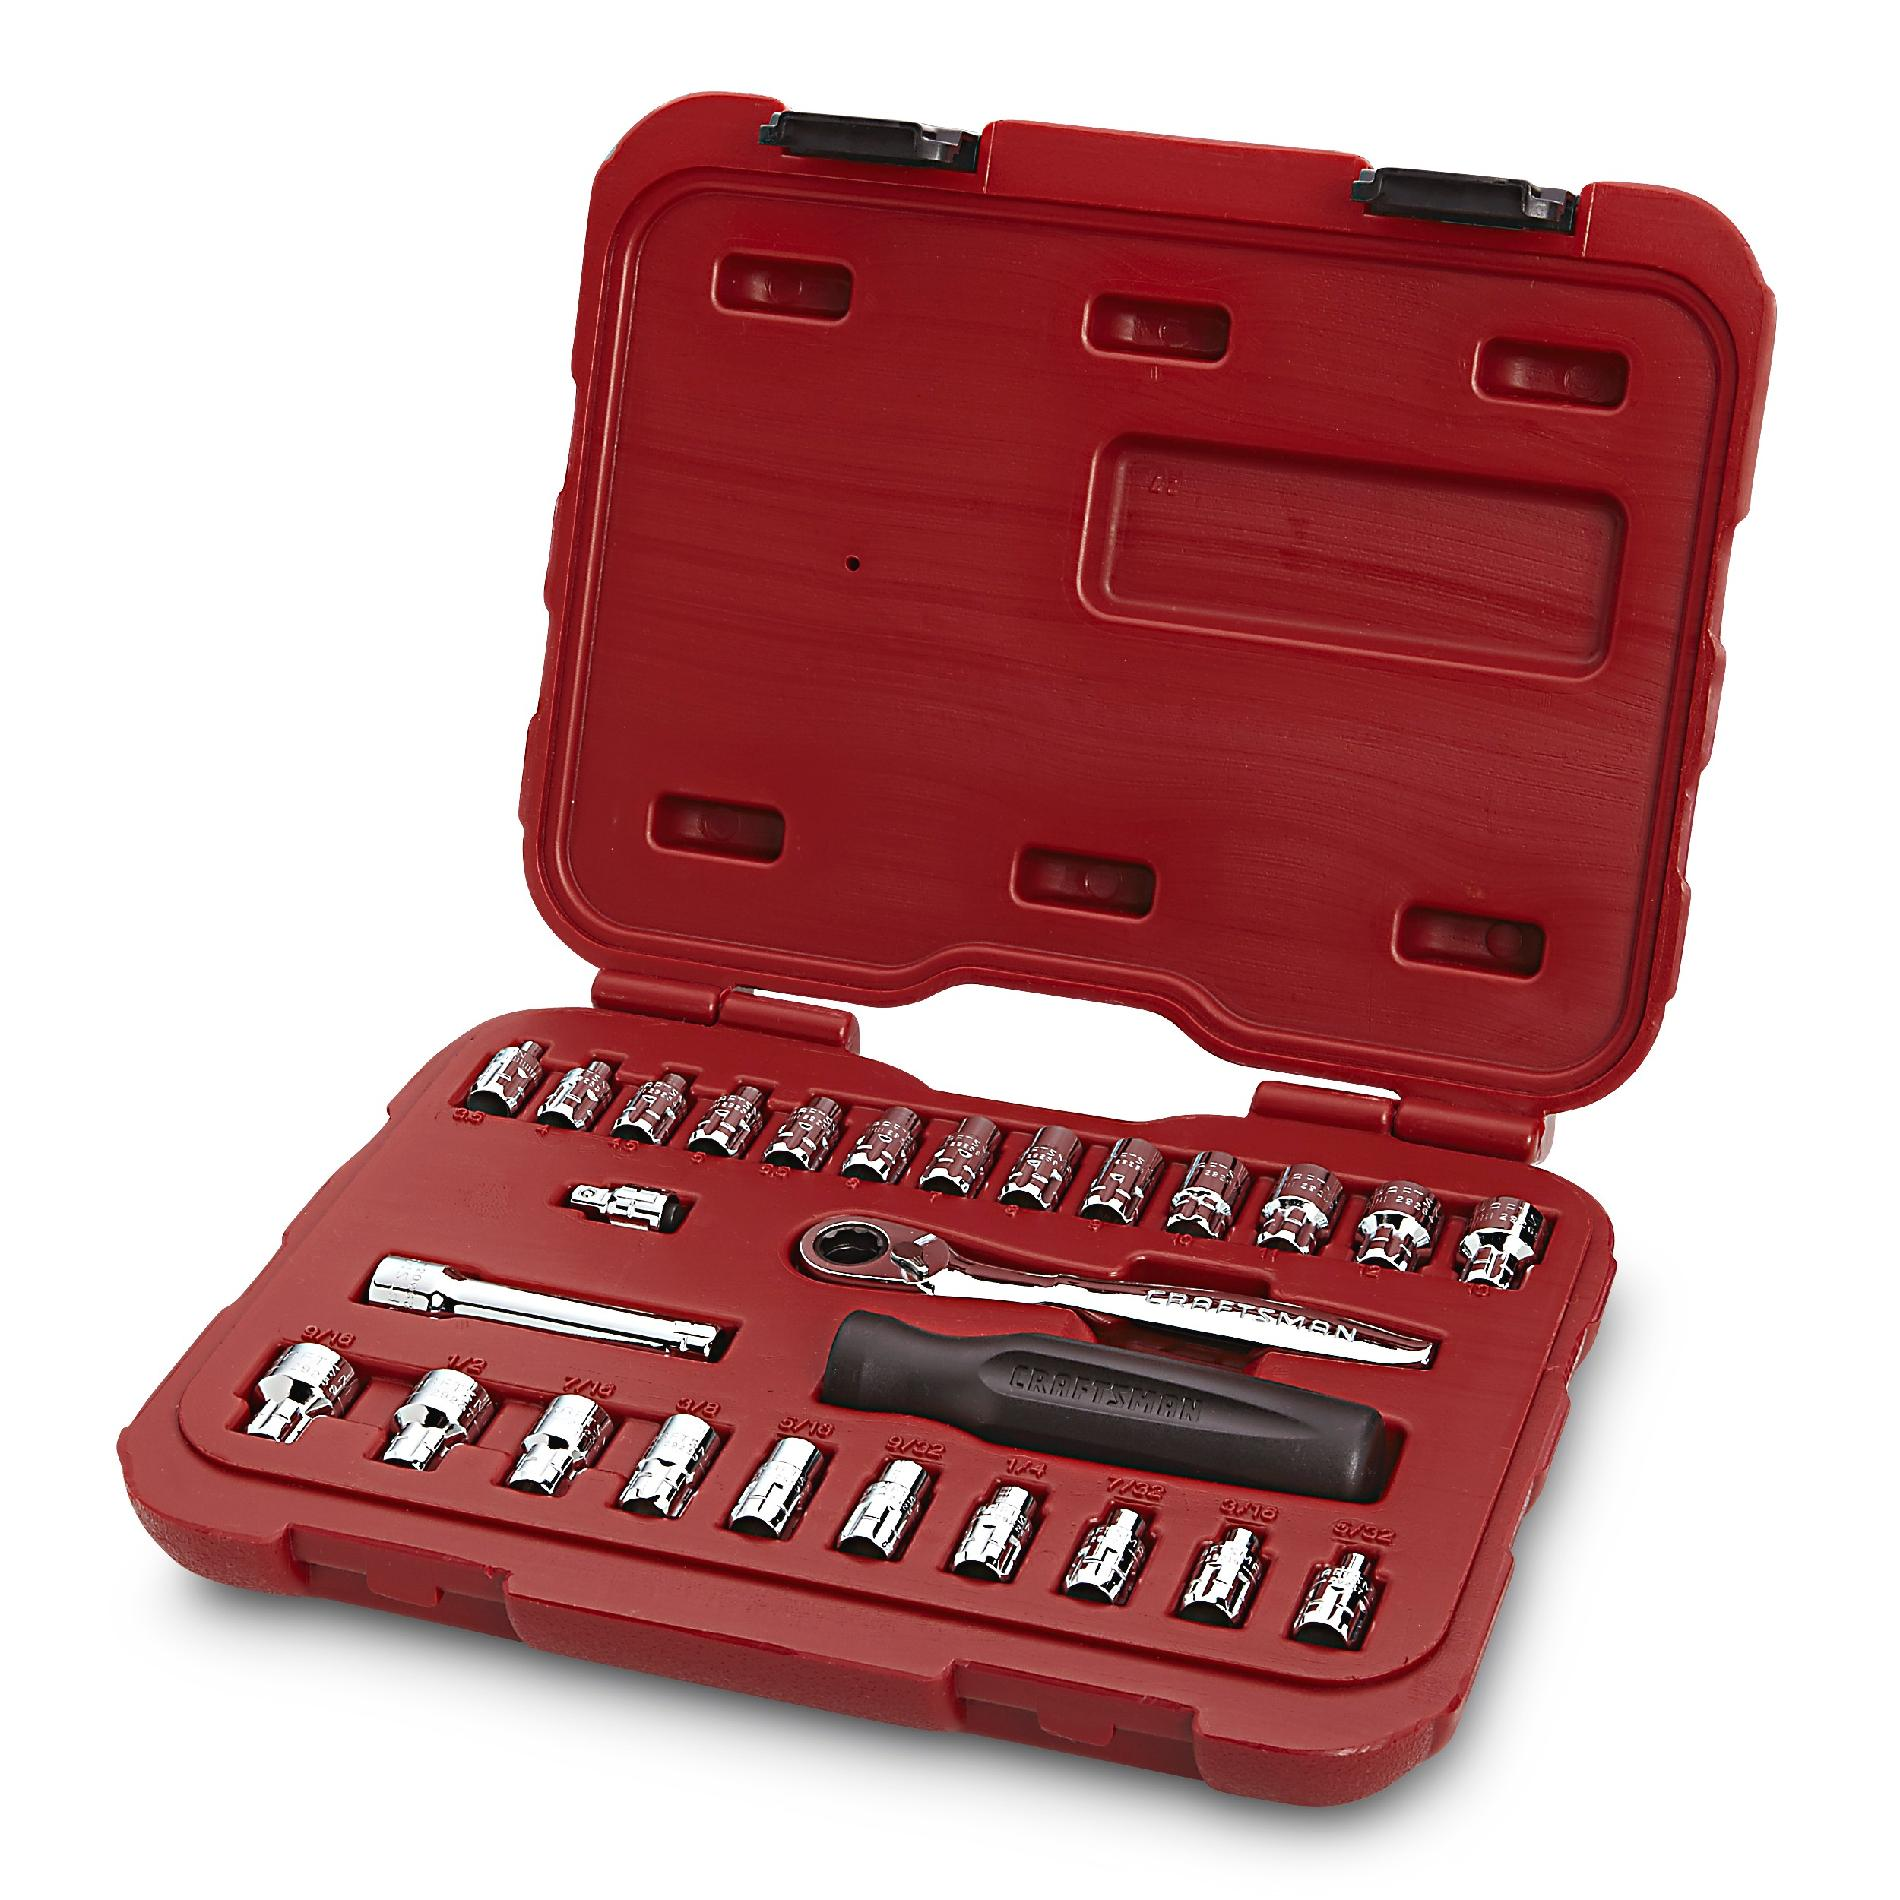 Craftsman 27pc Max Axess 1/4-in. Dr. Socket Wrench Set